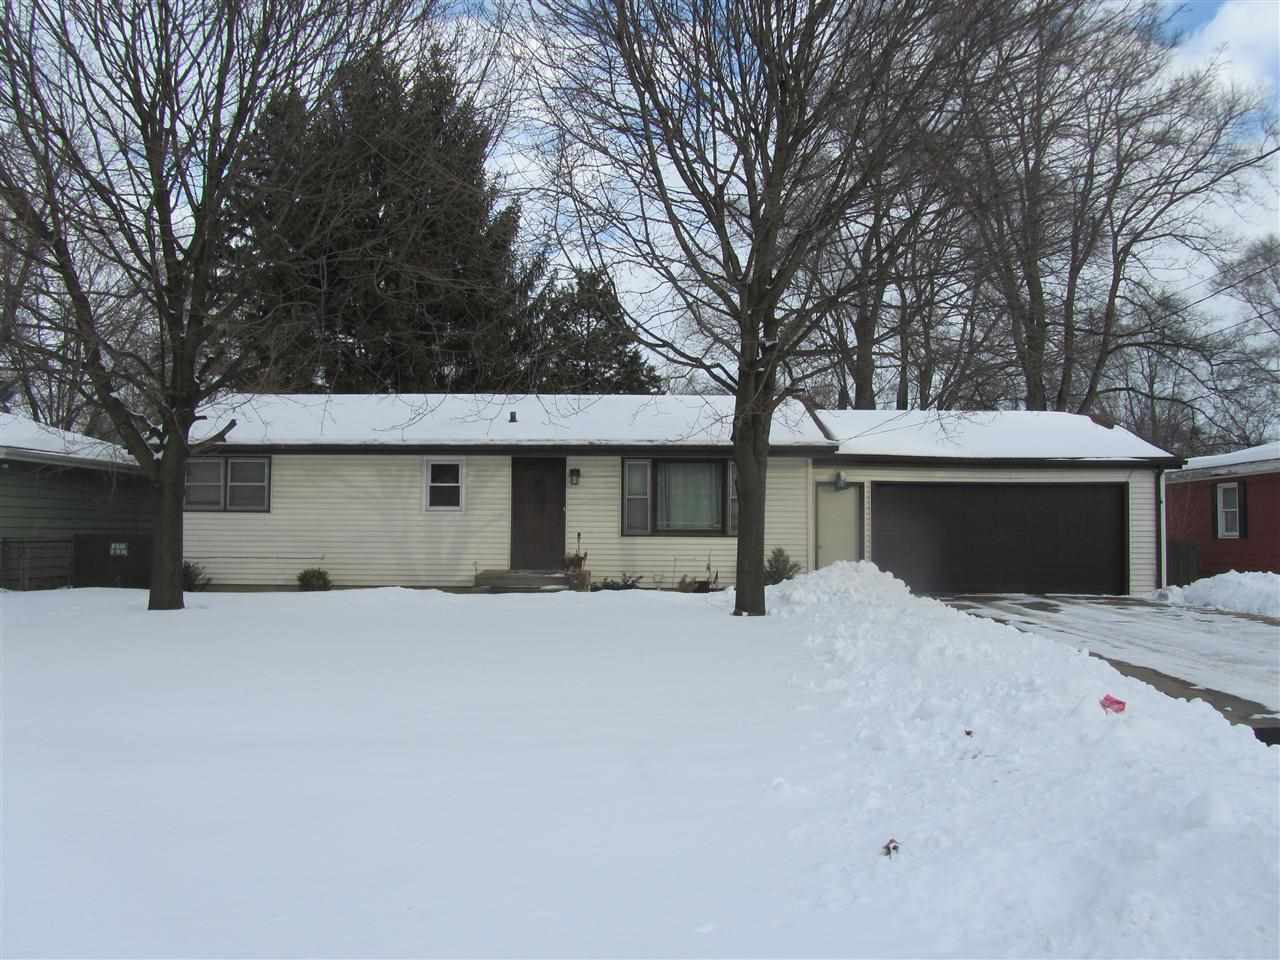 Machesney Park Real Estate & Homes for Sale in Machesney ...